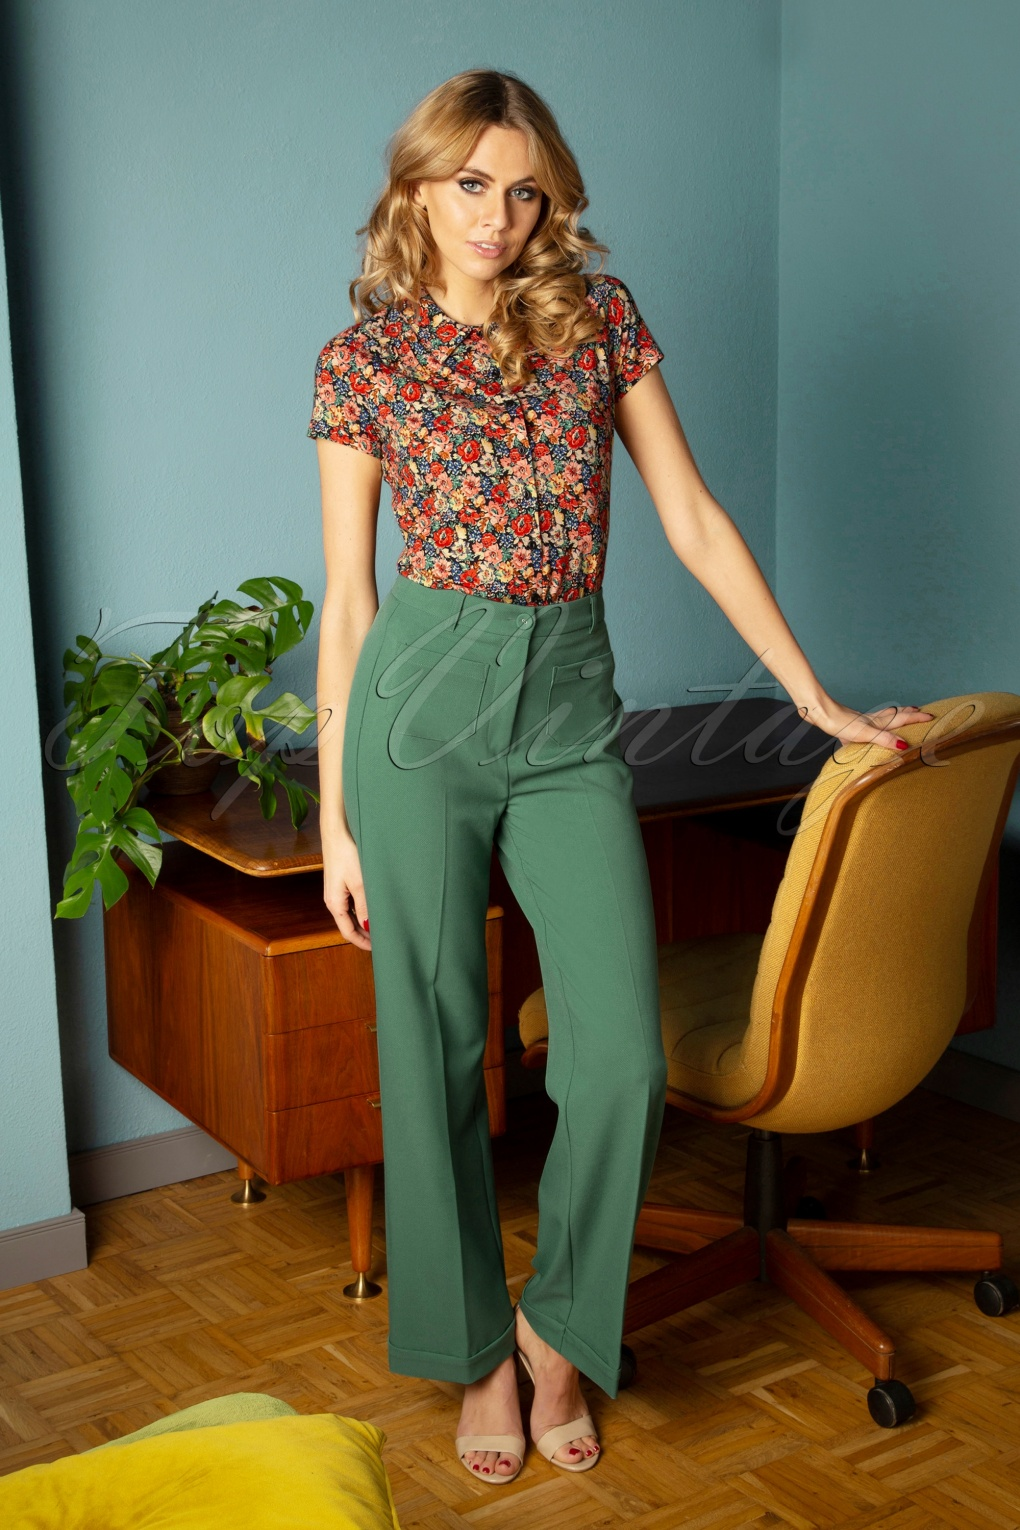 70s Outfits – 70s Style Ideas for Women 70s Garbo Tuillerie Pocket Pants in Fir Green £77.72 AT vintagedancer.com